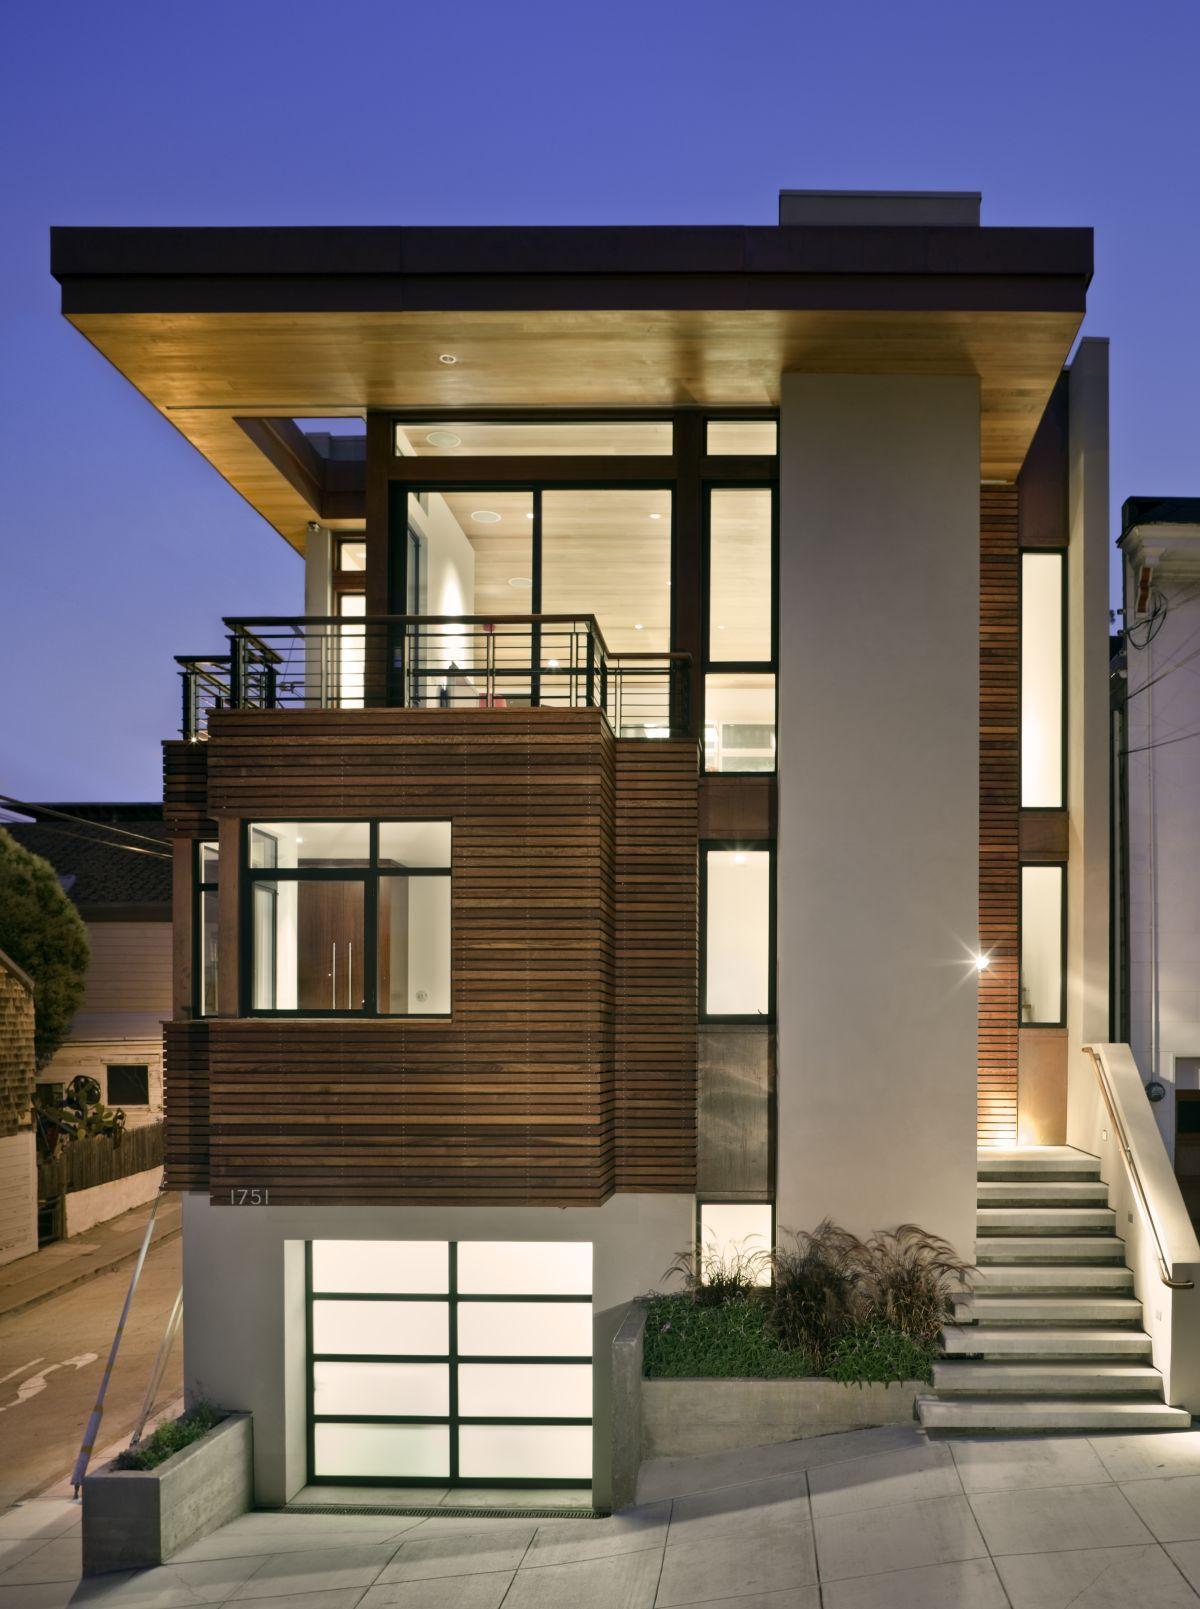 Pin by 7|2MOD on Amazing Modern homes | Pinterest | Modern ...